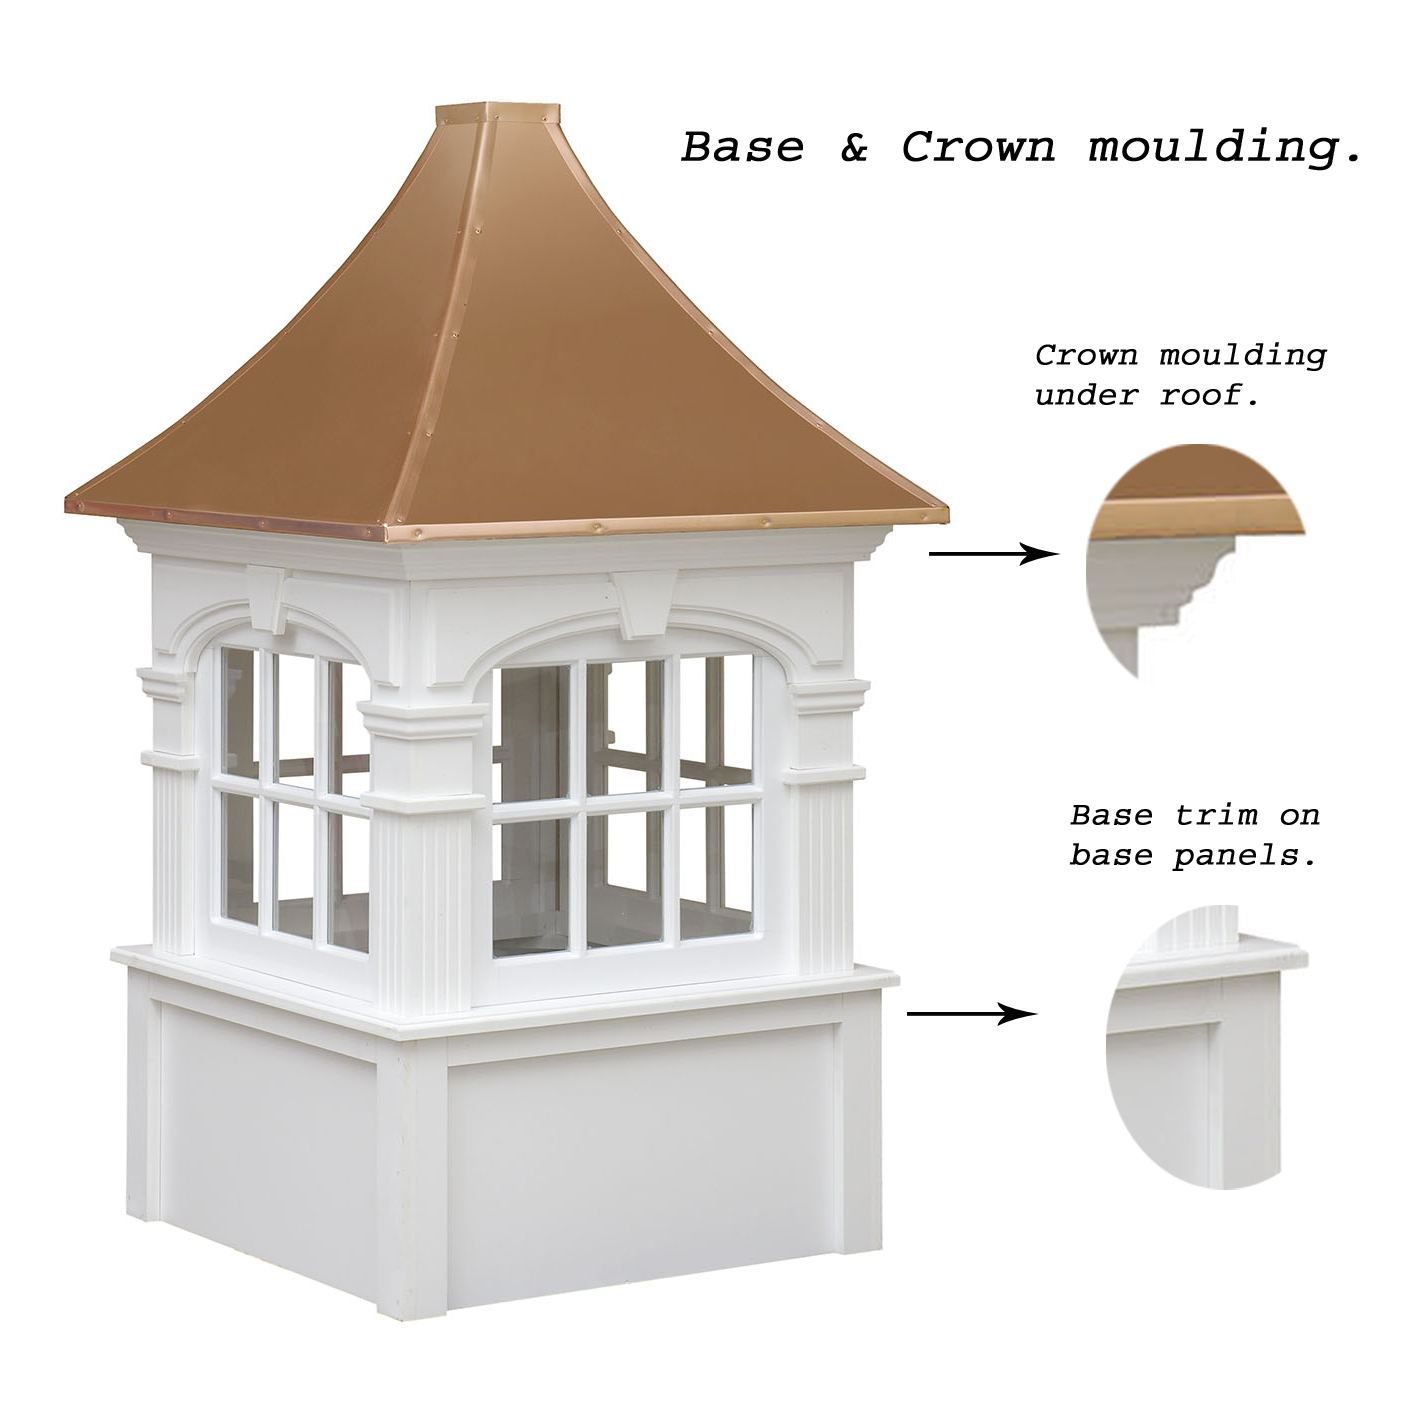 arched ellsworth cupola showcasing crown moulding and base trim